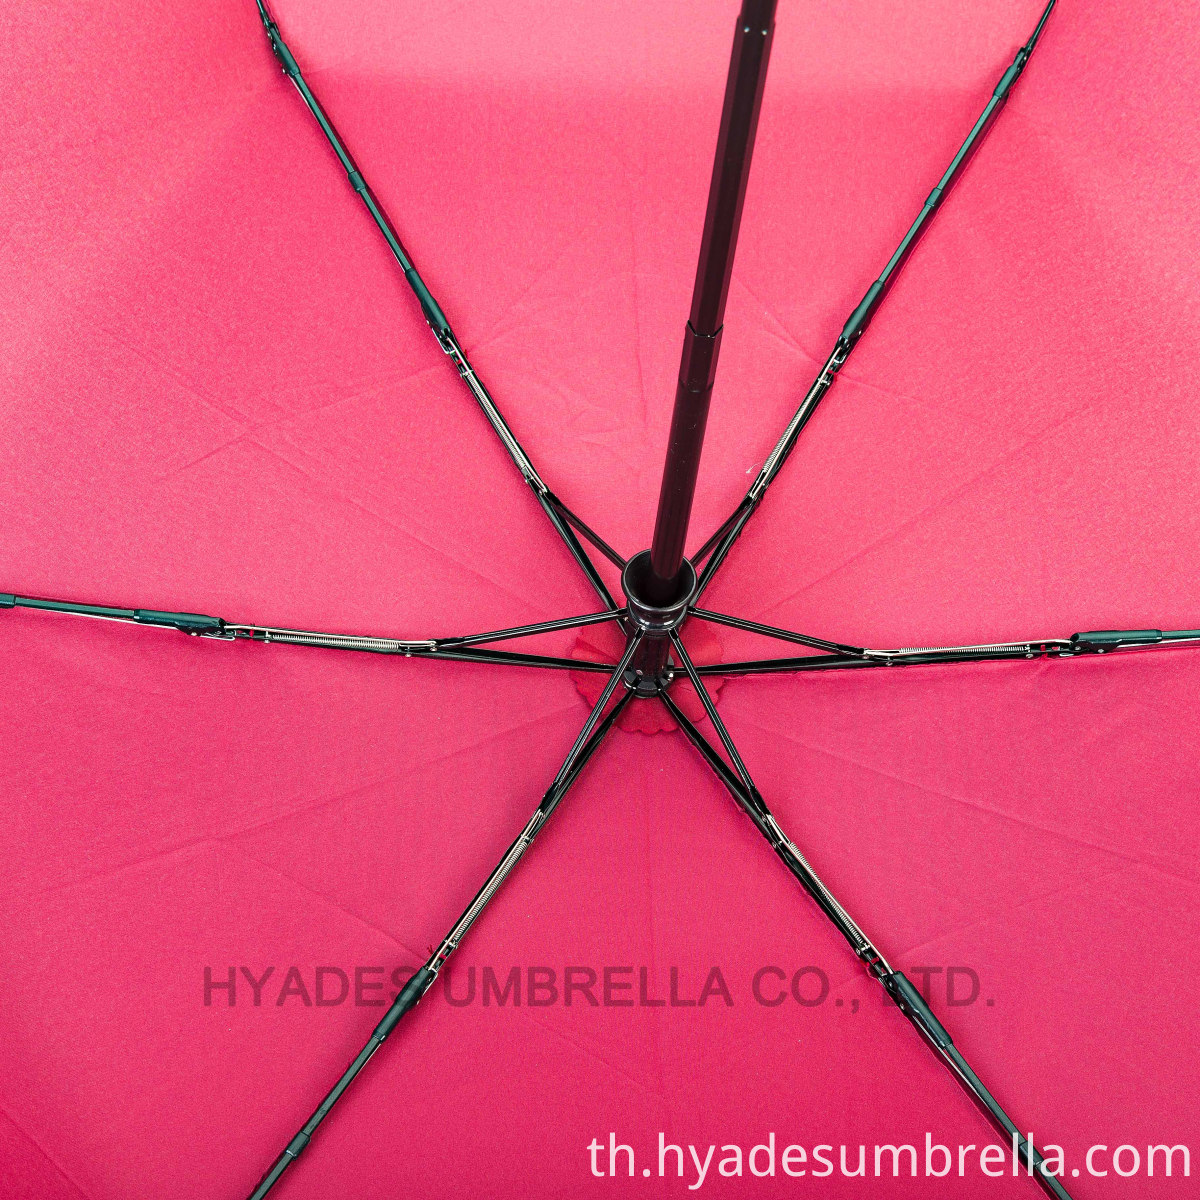 premier quality fiberglass ribs for folding umbrella wine color